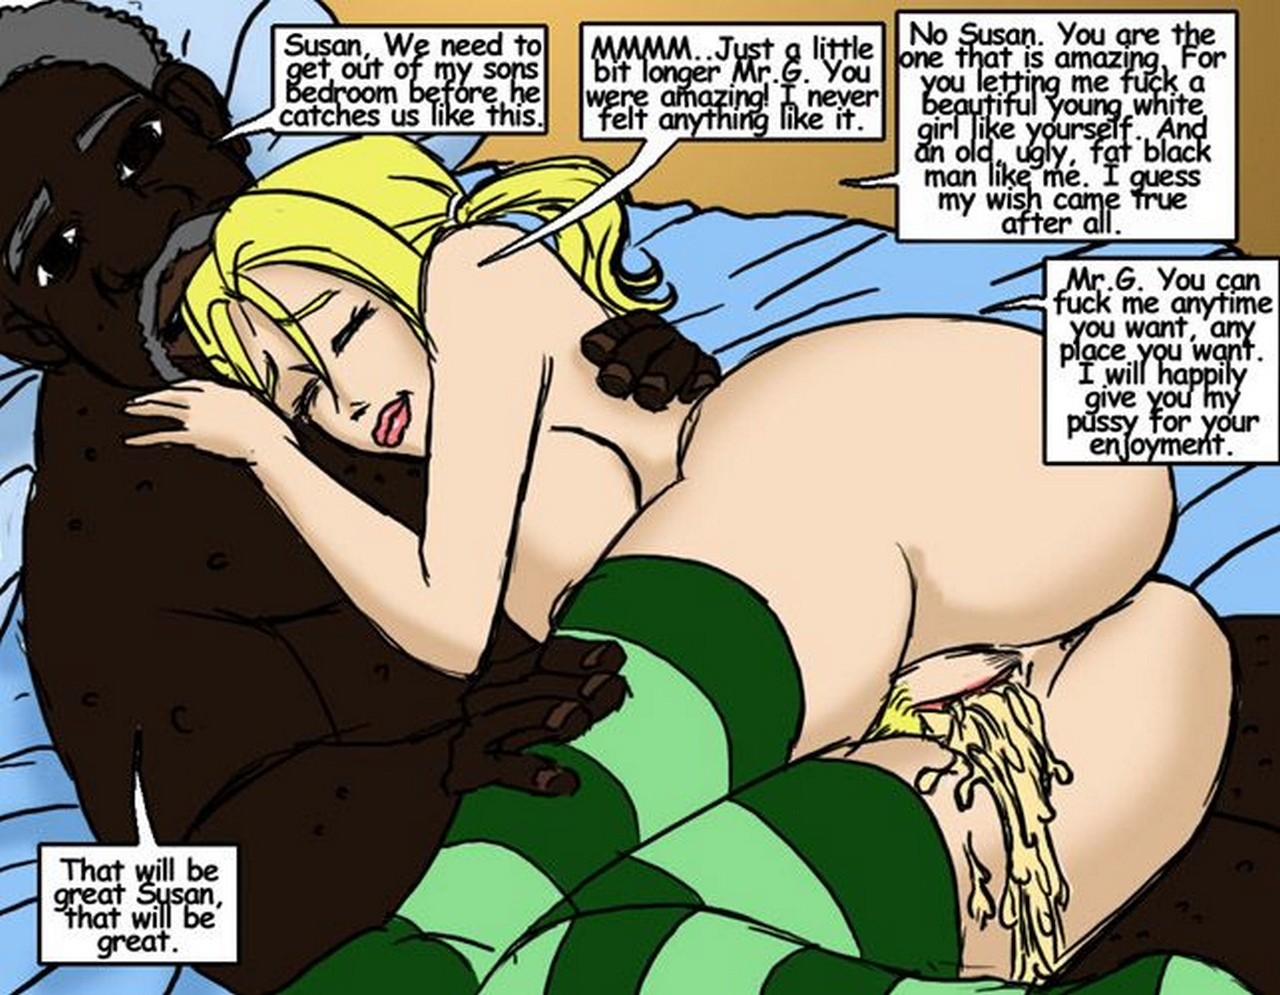 Son-s-Hot-Litlle-Blonde 27 free sex comic